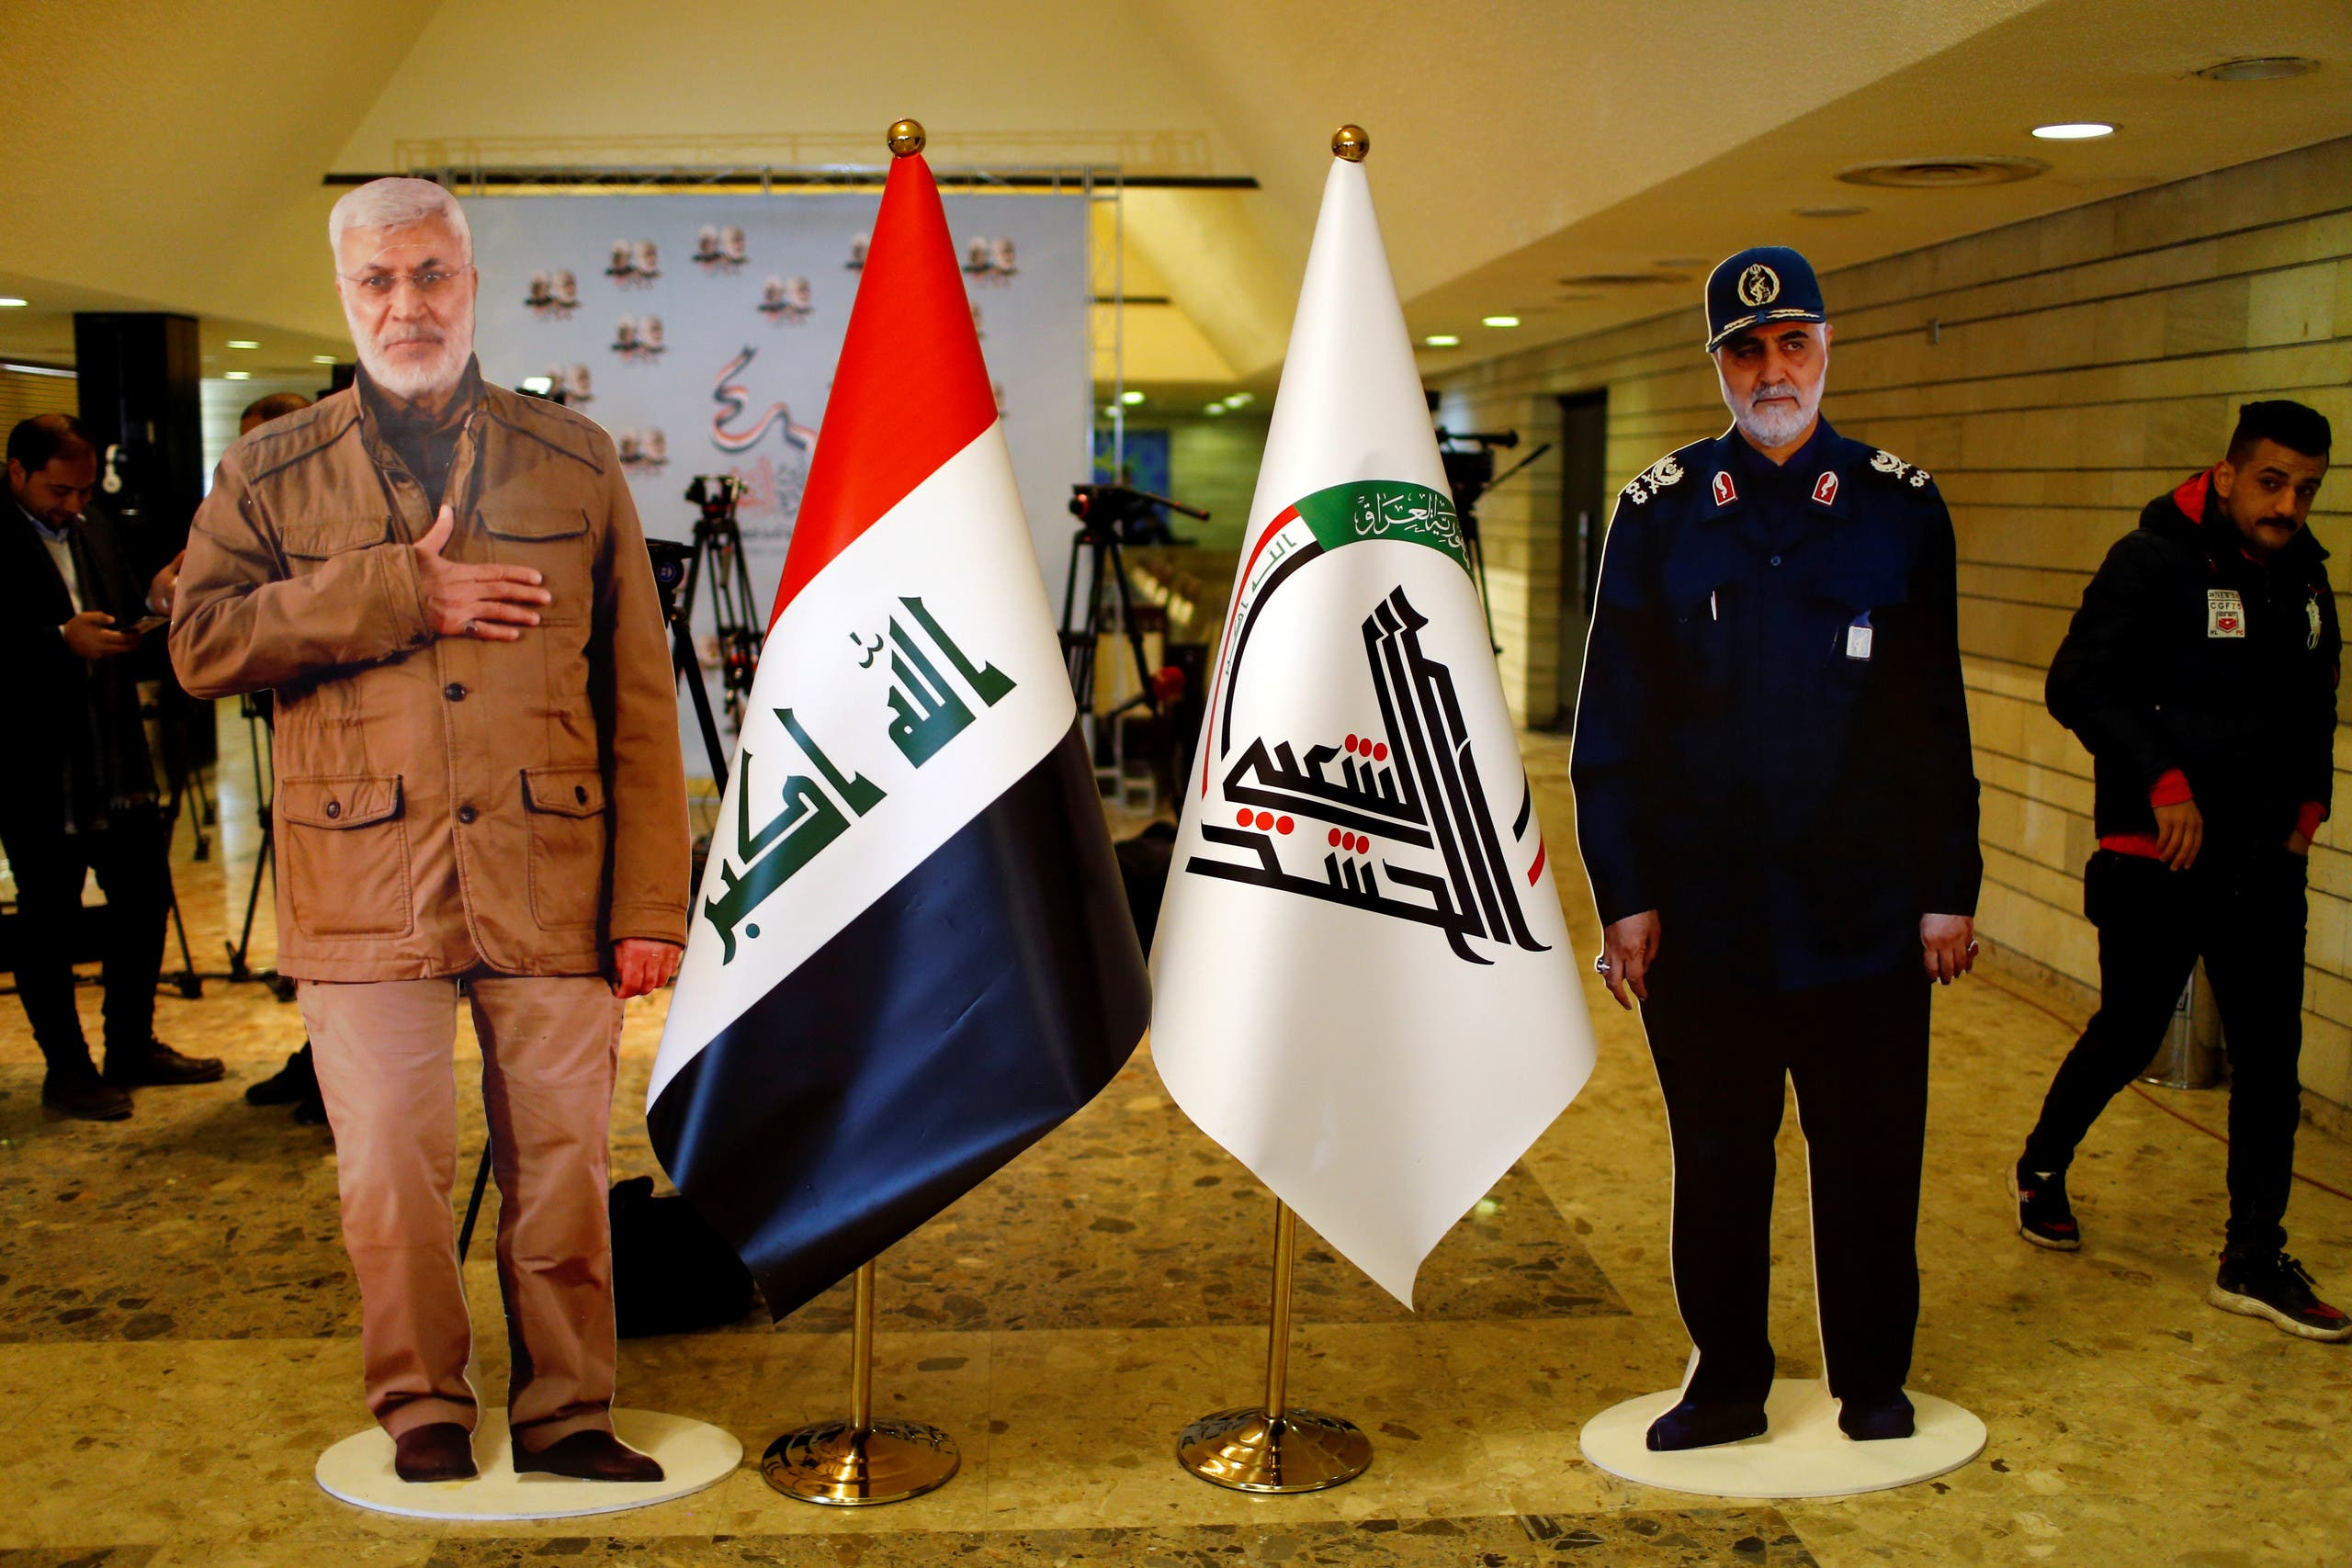 Cardboard cutouts of the Qassem Soleimani and Abu Mahdi al-Mohandes are seen during the forty days memorial in Baghdad, Iraq, February 11, 2020. (Reuters)